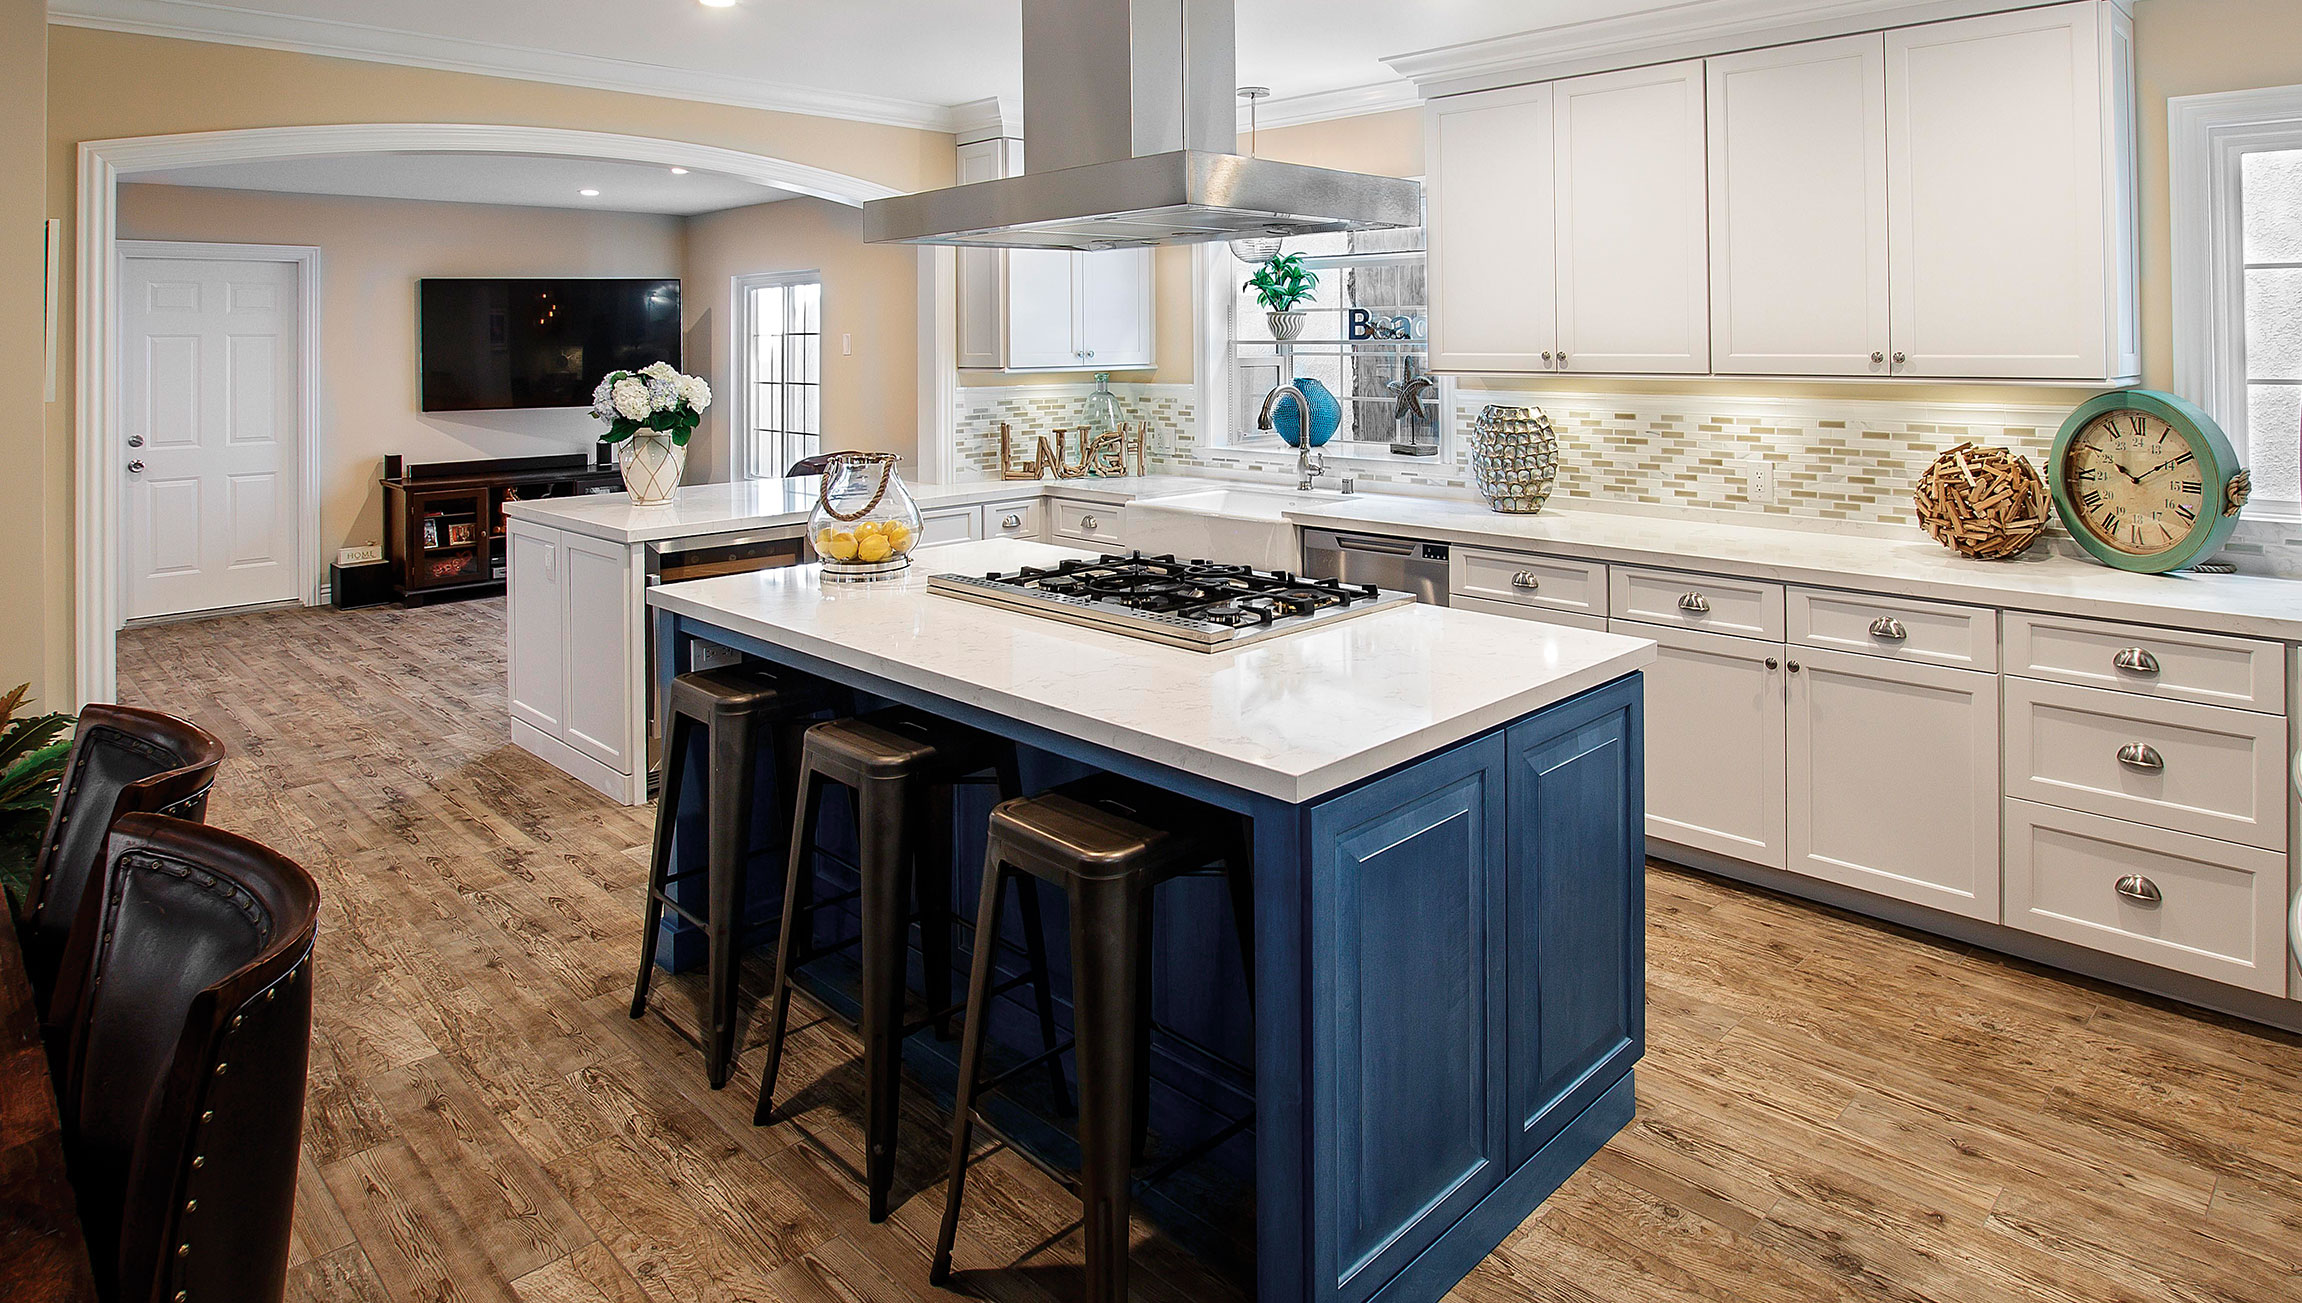 Kitchen Island Cabinets in Blue | DeWils Custom Cabinetry